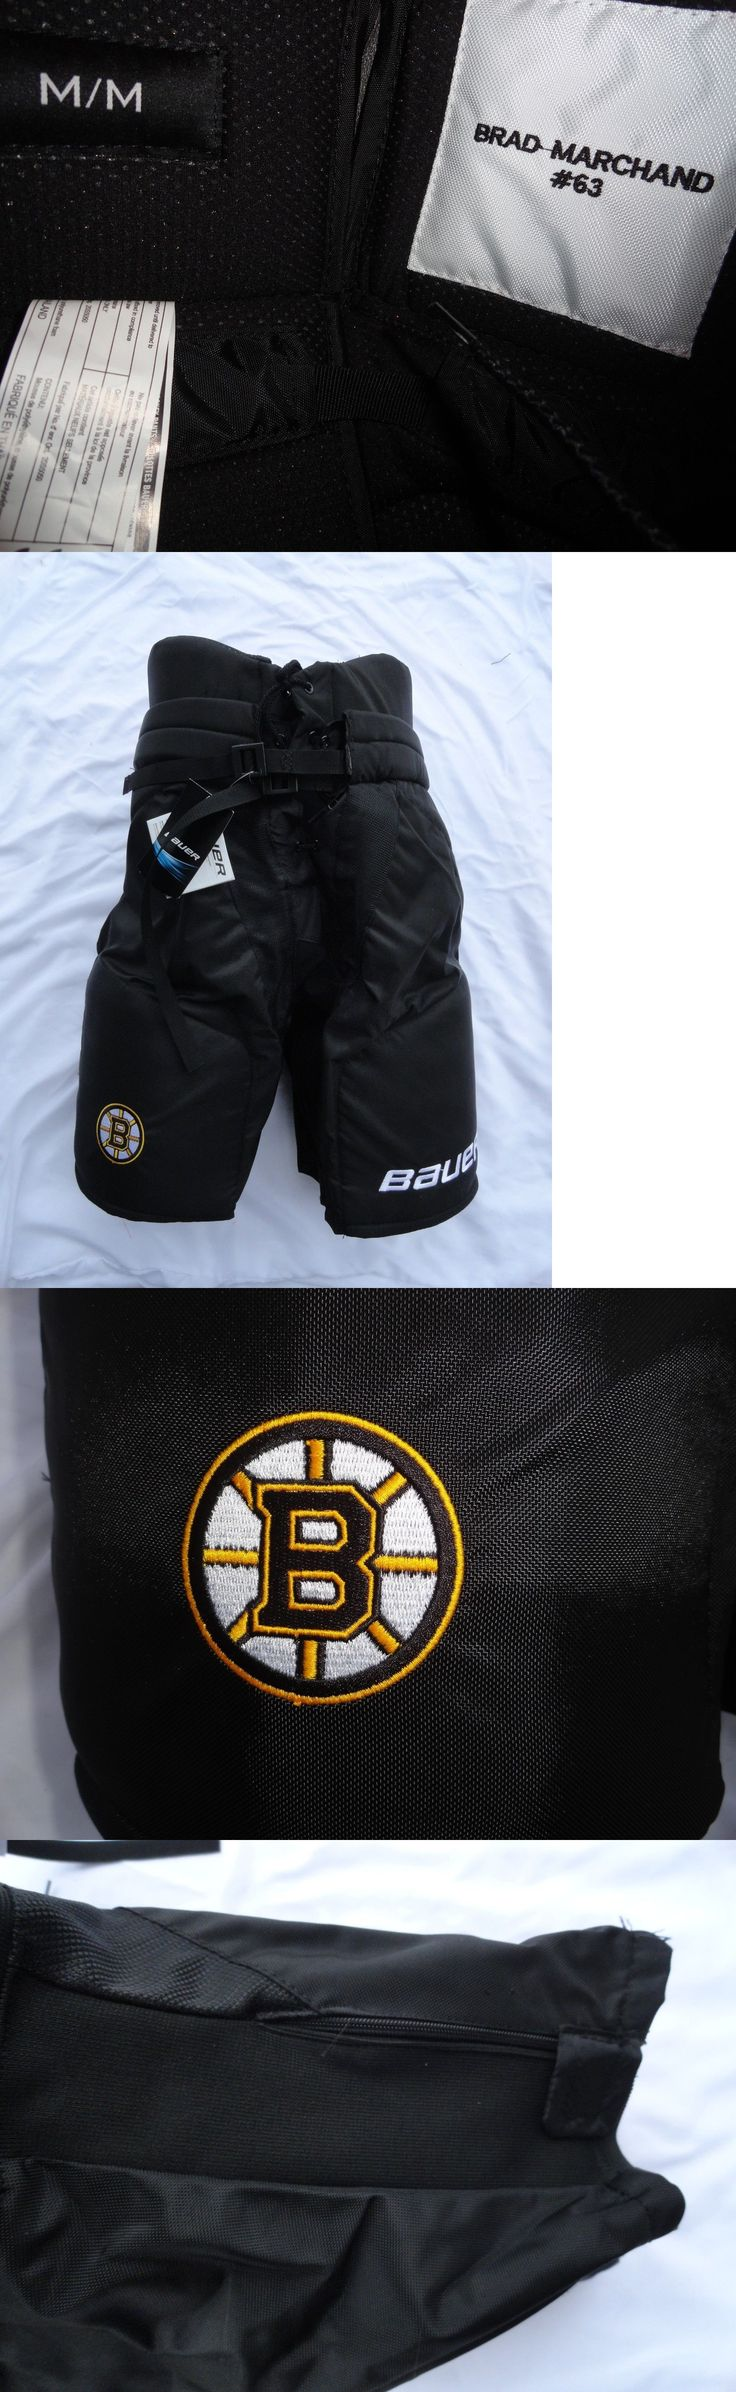 Other Hockey Protective Gear 79767: Pro Stock Hockey Pants Bauer Supreme One95 Nexus1000 BUY IT NOW ONLY: $225.0